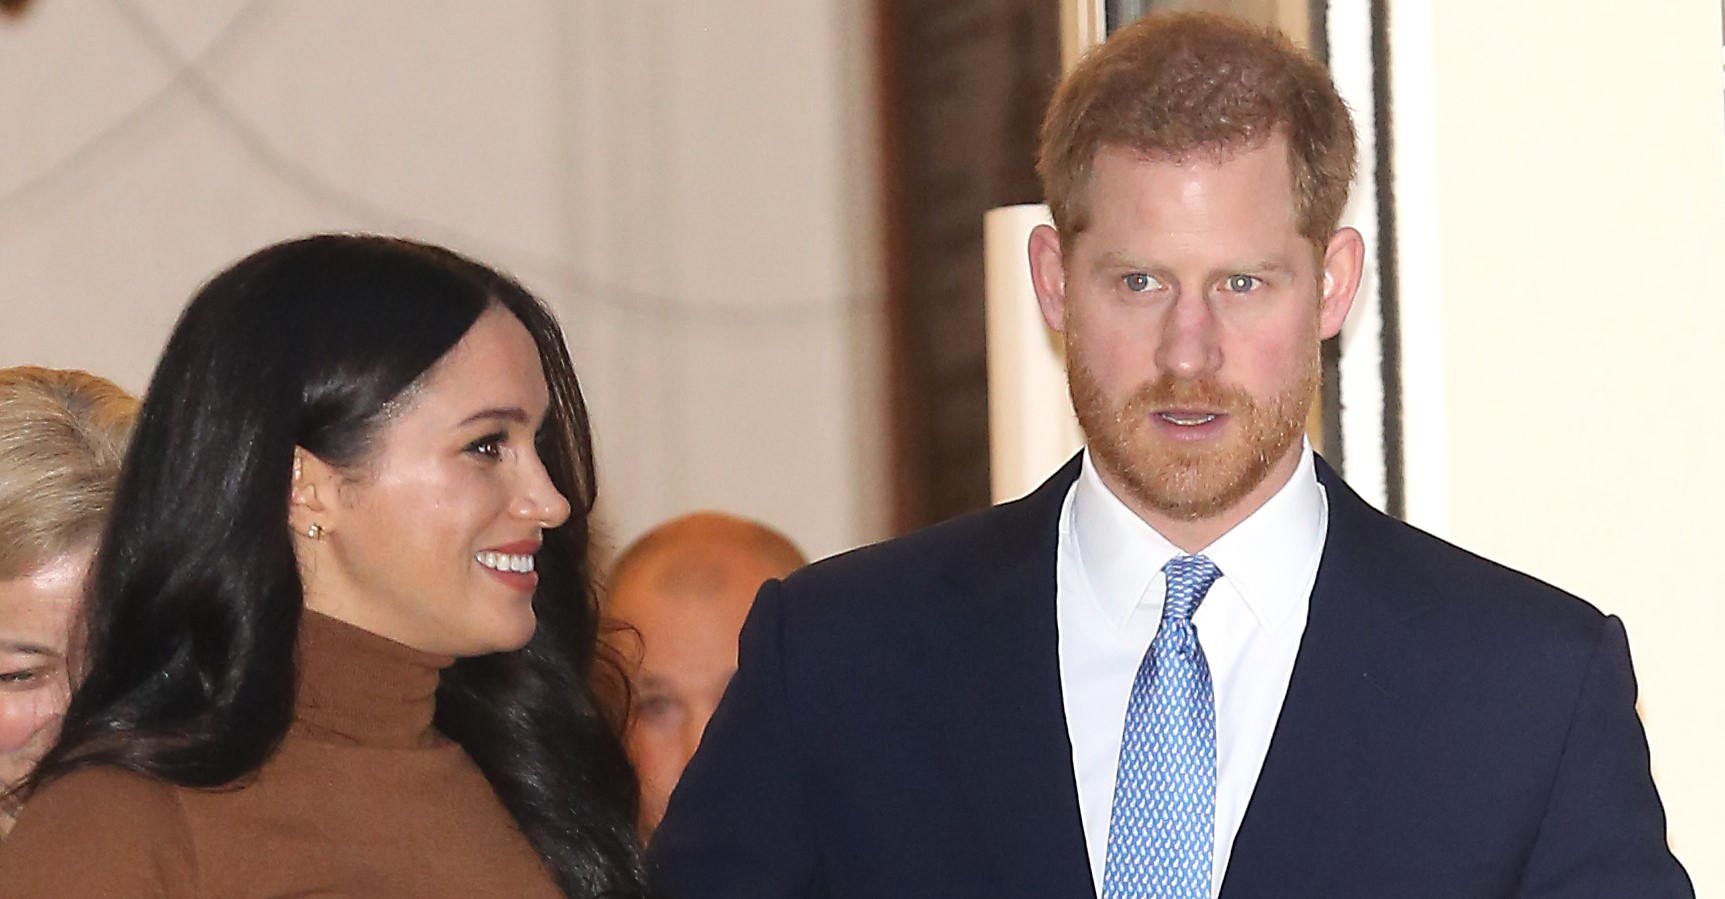 Harry 'heartbroken over royal exit but Meghan wants to leave'